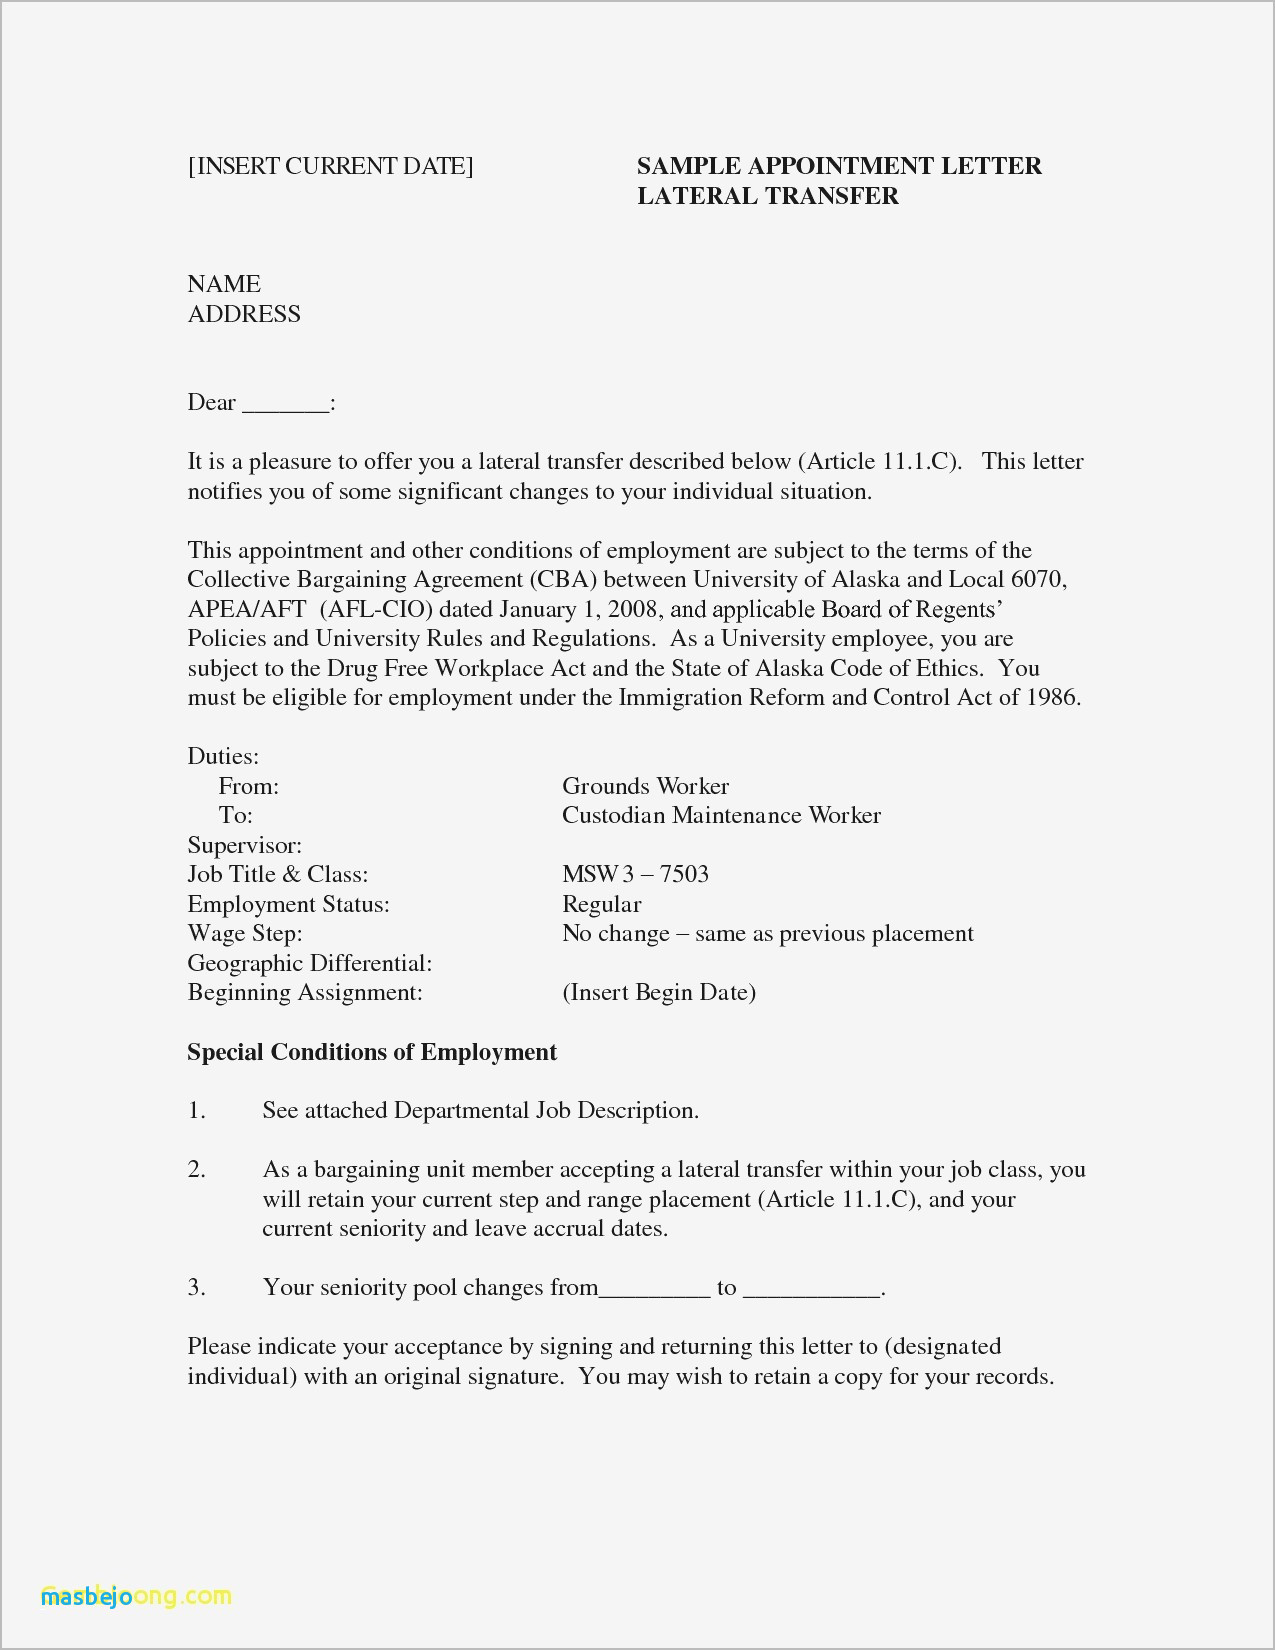 Musical theatre Resume Template - Musical theatre Resume Examples Resume Templates Musical theatre